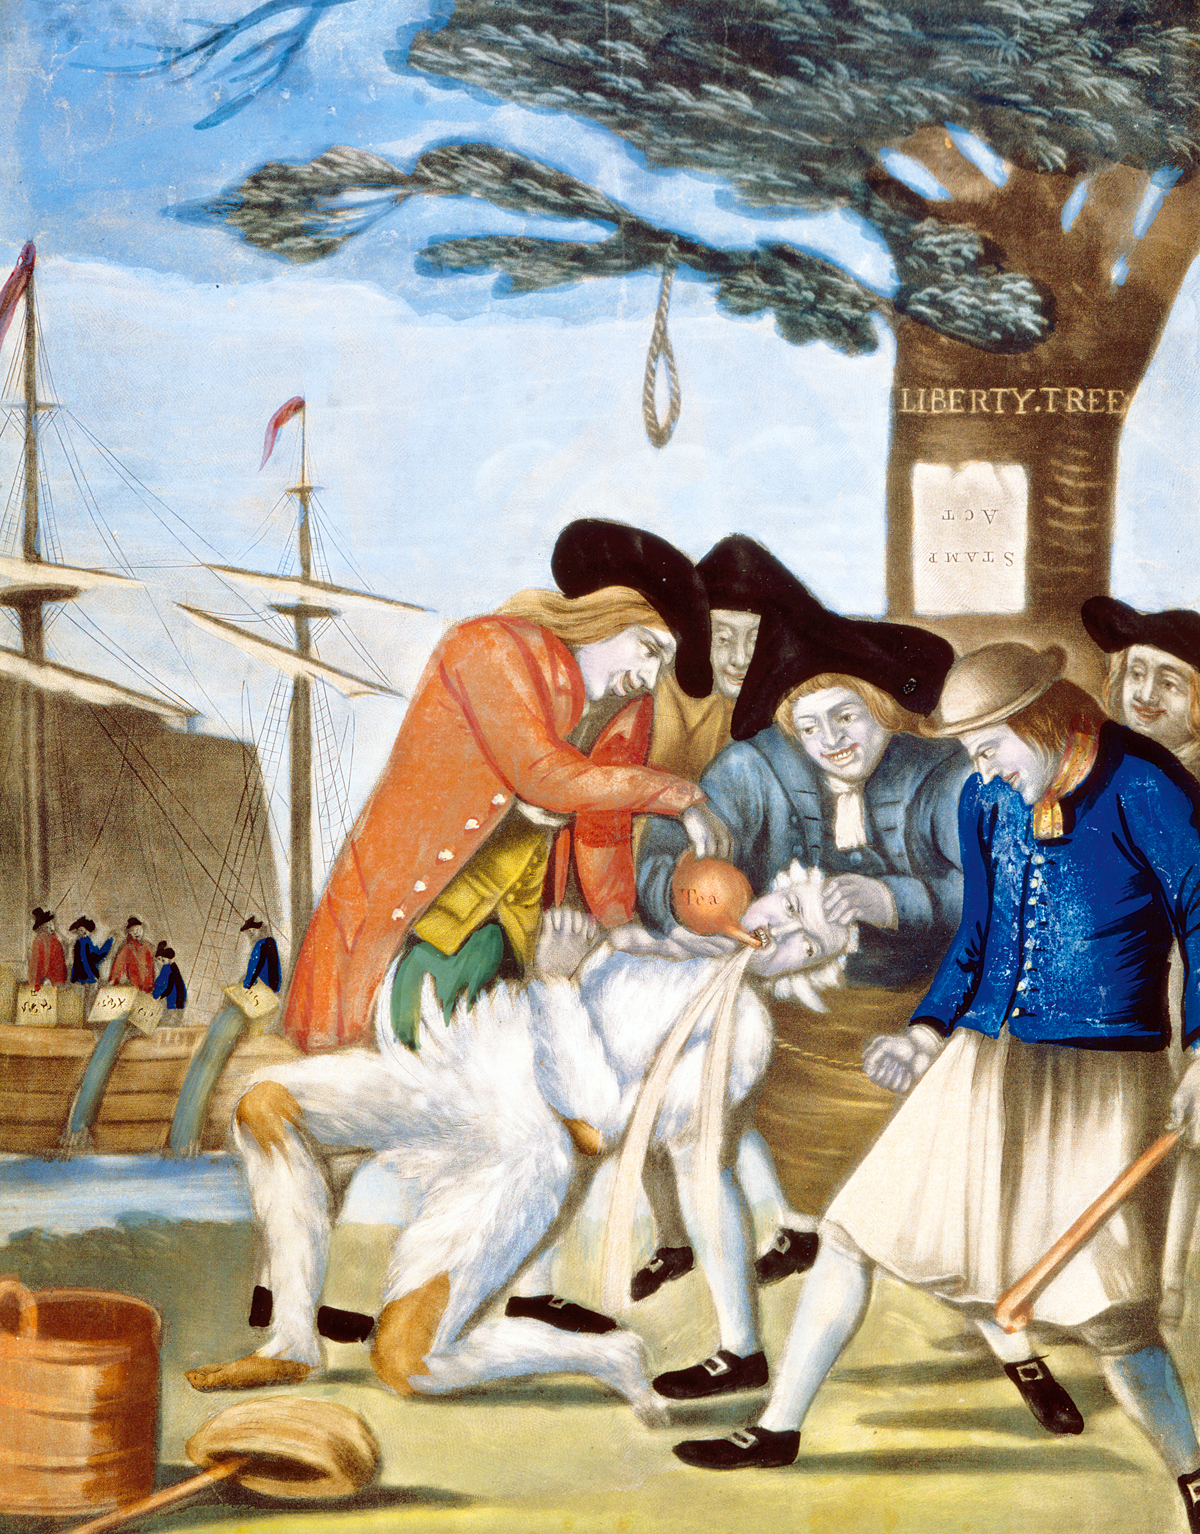 The Bostonians Paying the Excise-Man or Tarring and Feathering, by Philip Dawe, 1774. United States Library of Congress's Prints and Photographs division, Washington D.C.